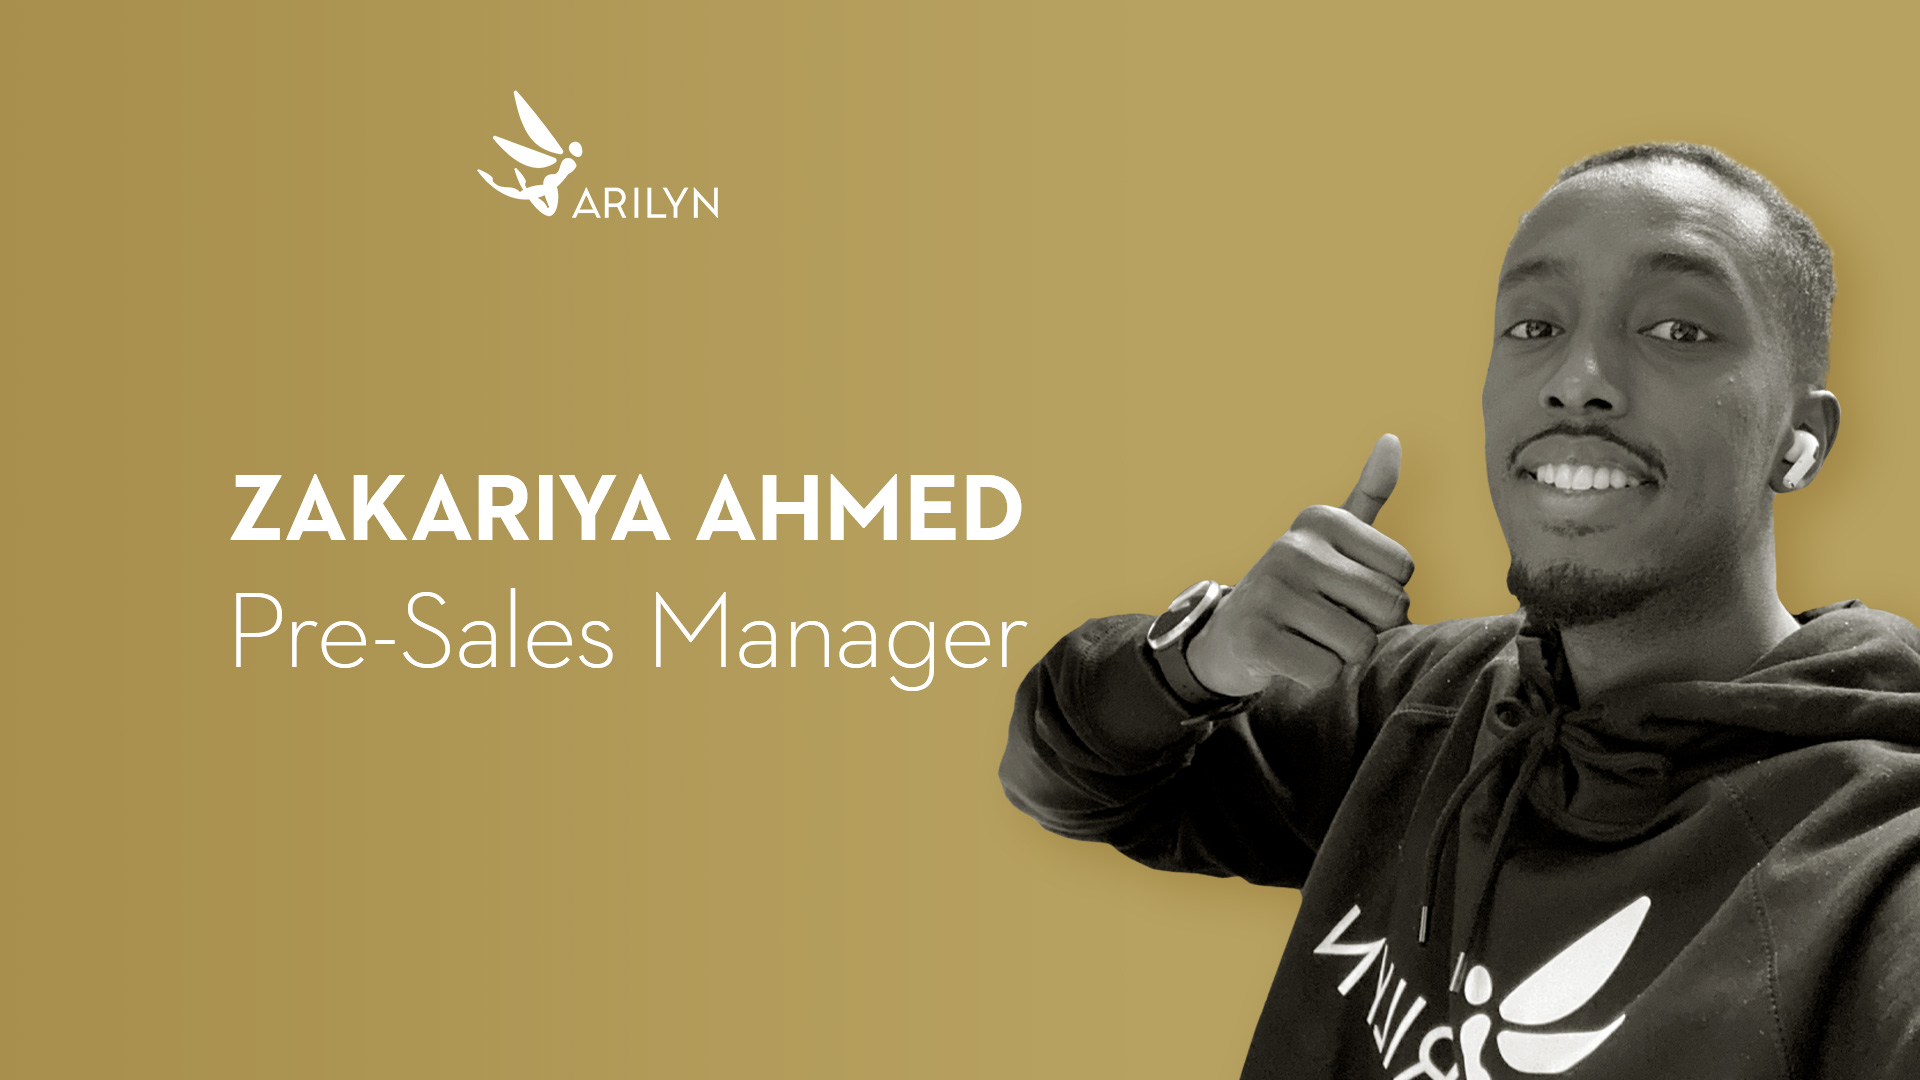 Get to know Arilyn - Zakariya Ahmed, Pre-Sales Manager